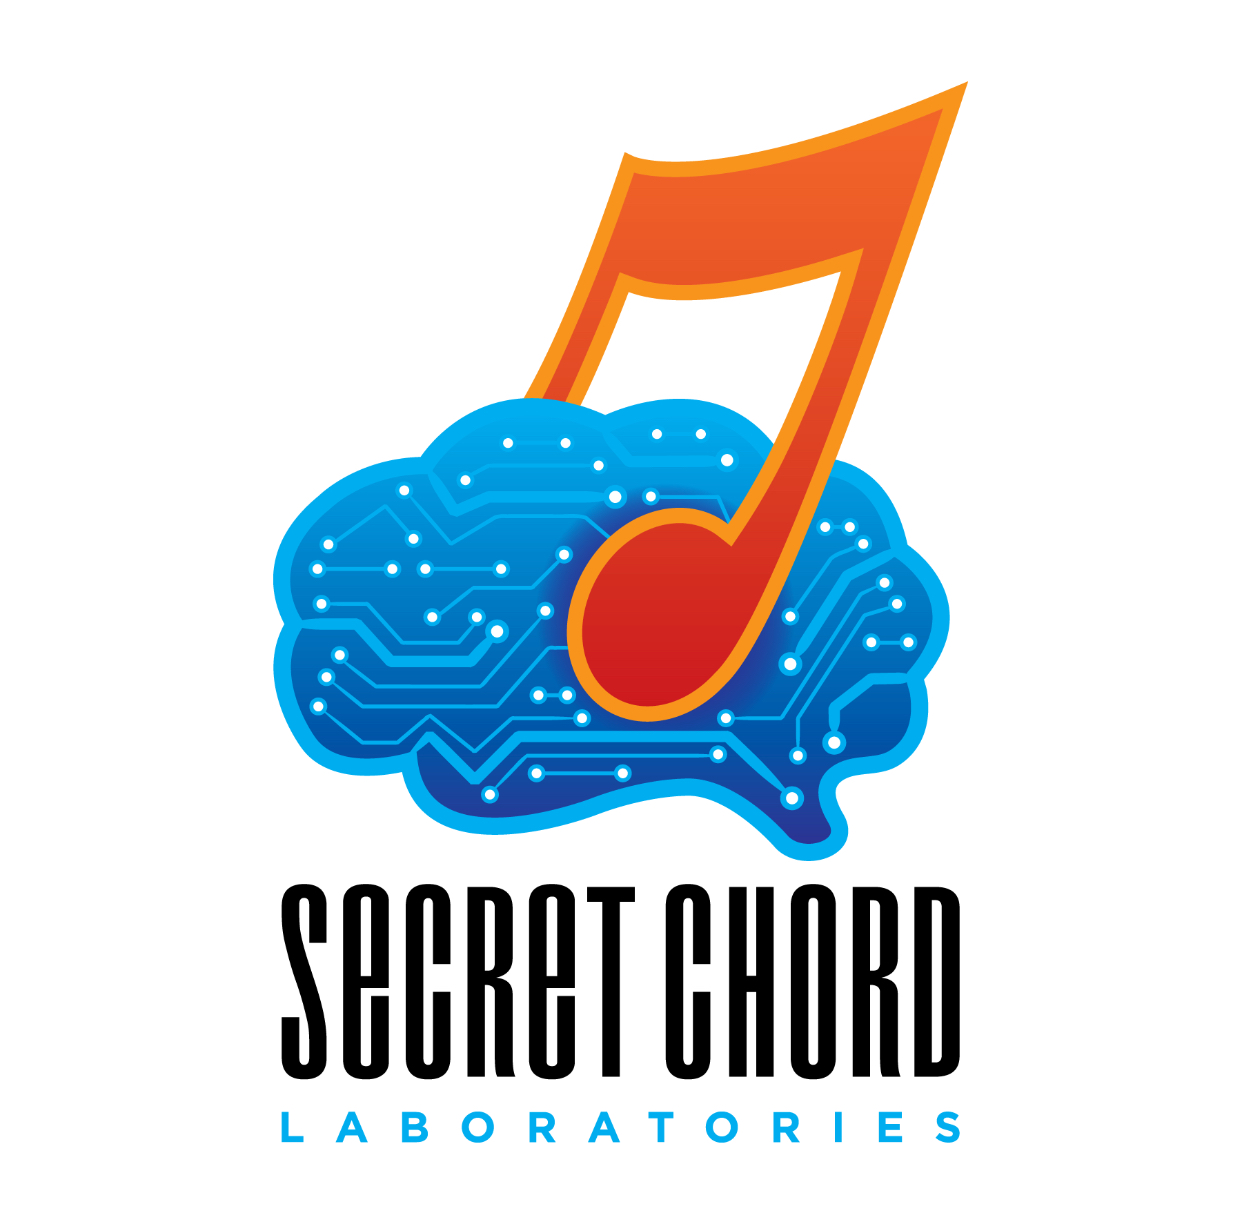 Secret Chord Laboratories